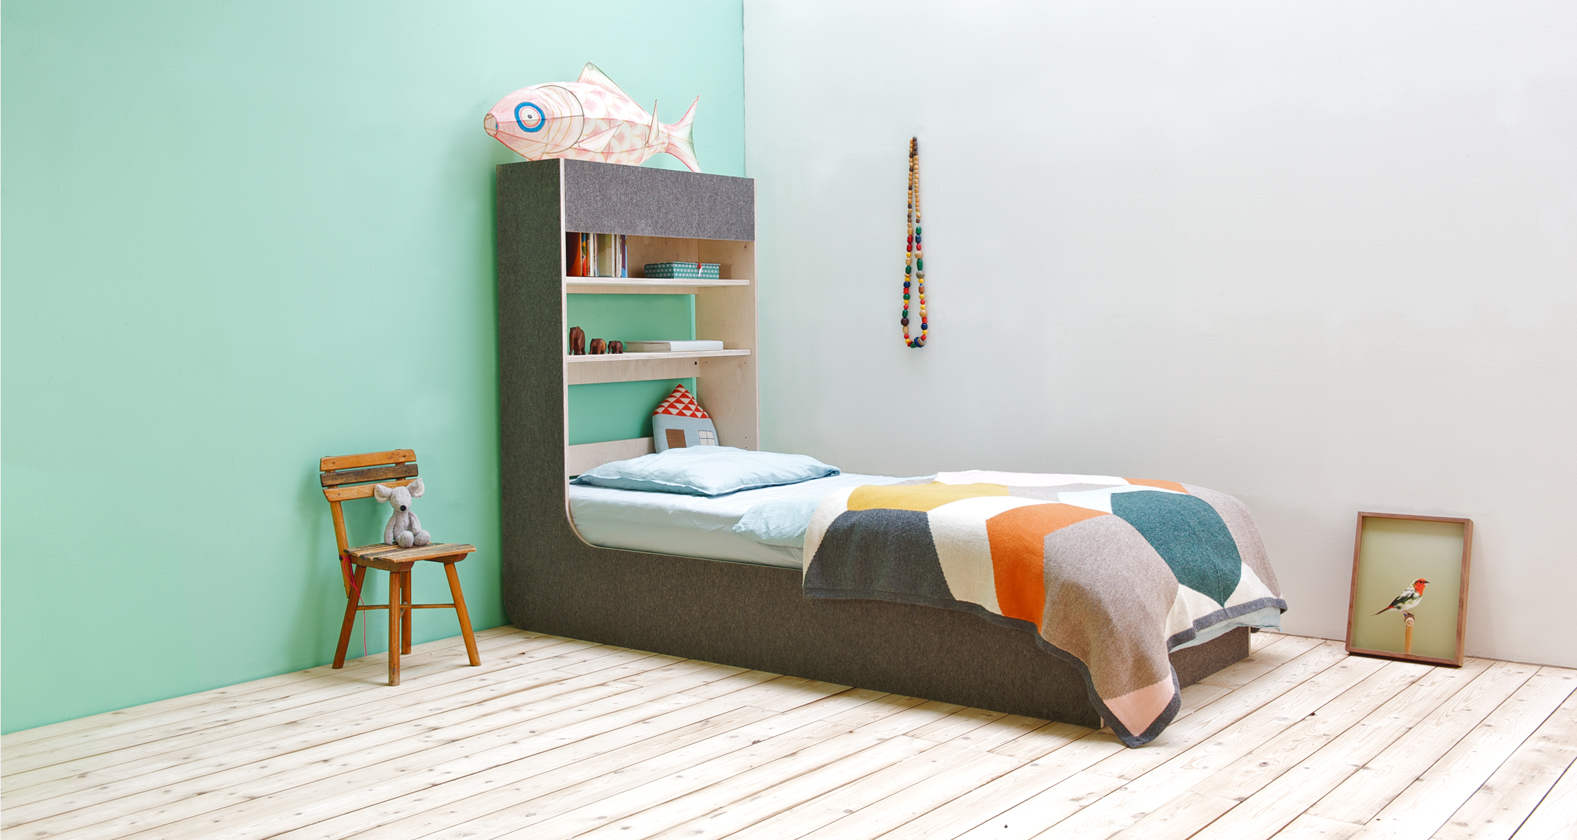 Blog d co solovely d coration chambre d 39 enfant - Chambre d enfant design ...